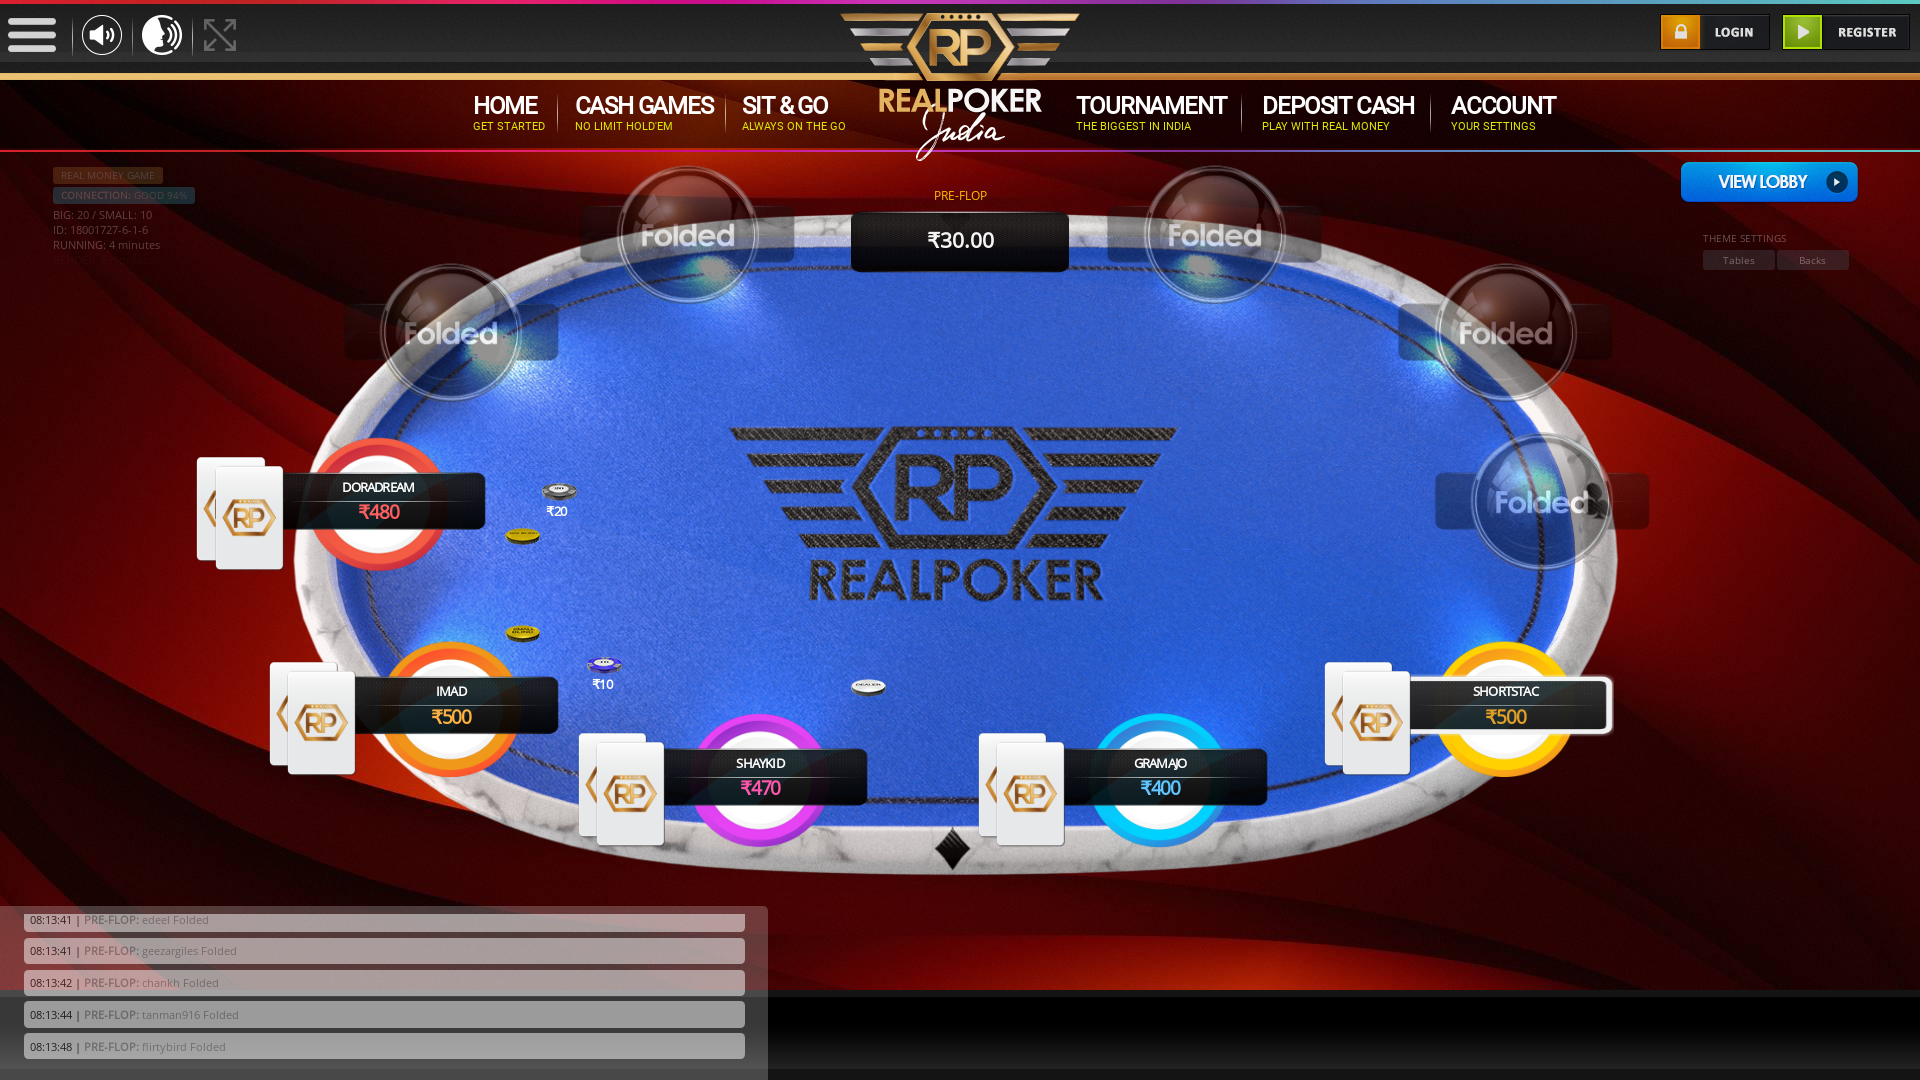 Greater Kailash, New Delhi texas holdem poker table on a 10 player table in the 3rd minute of the game